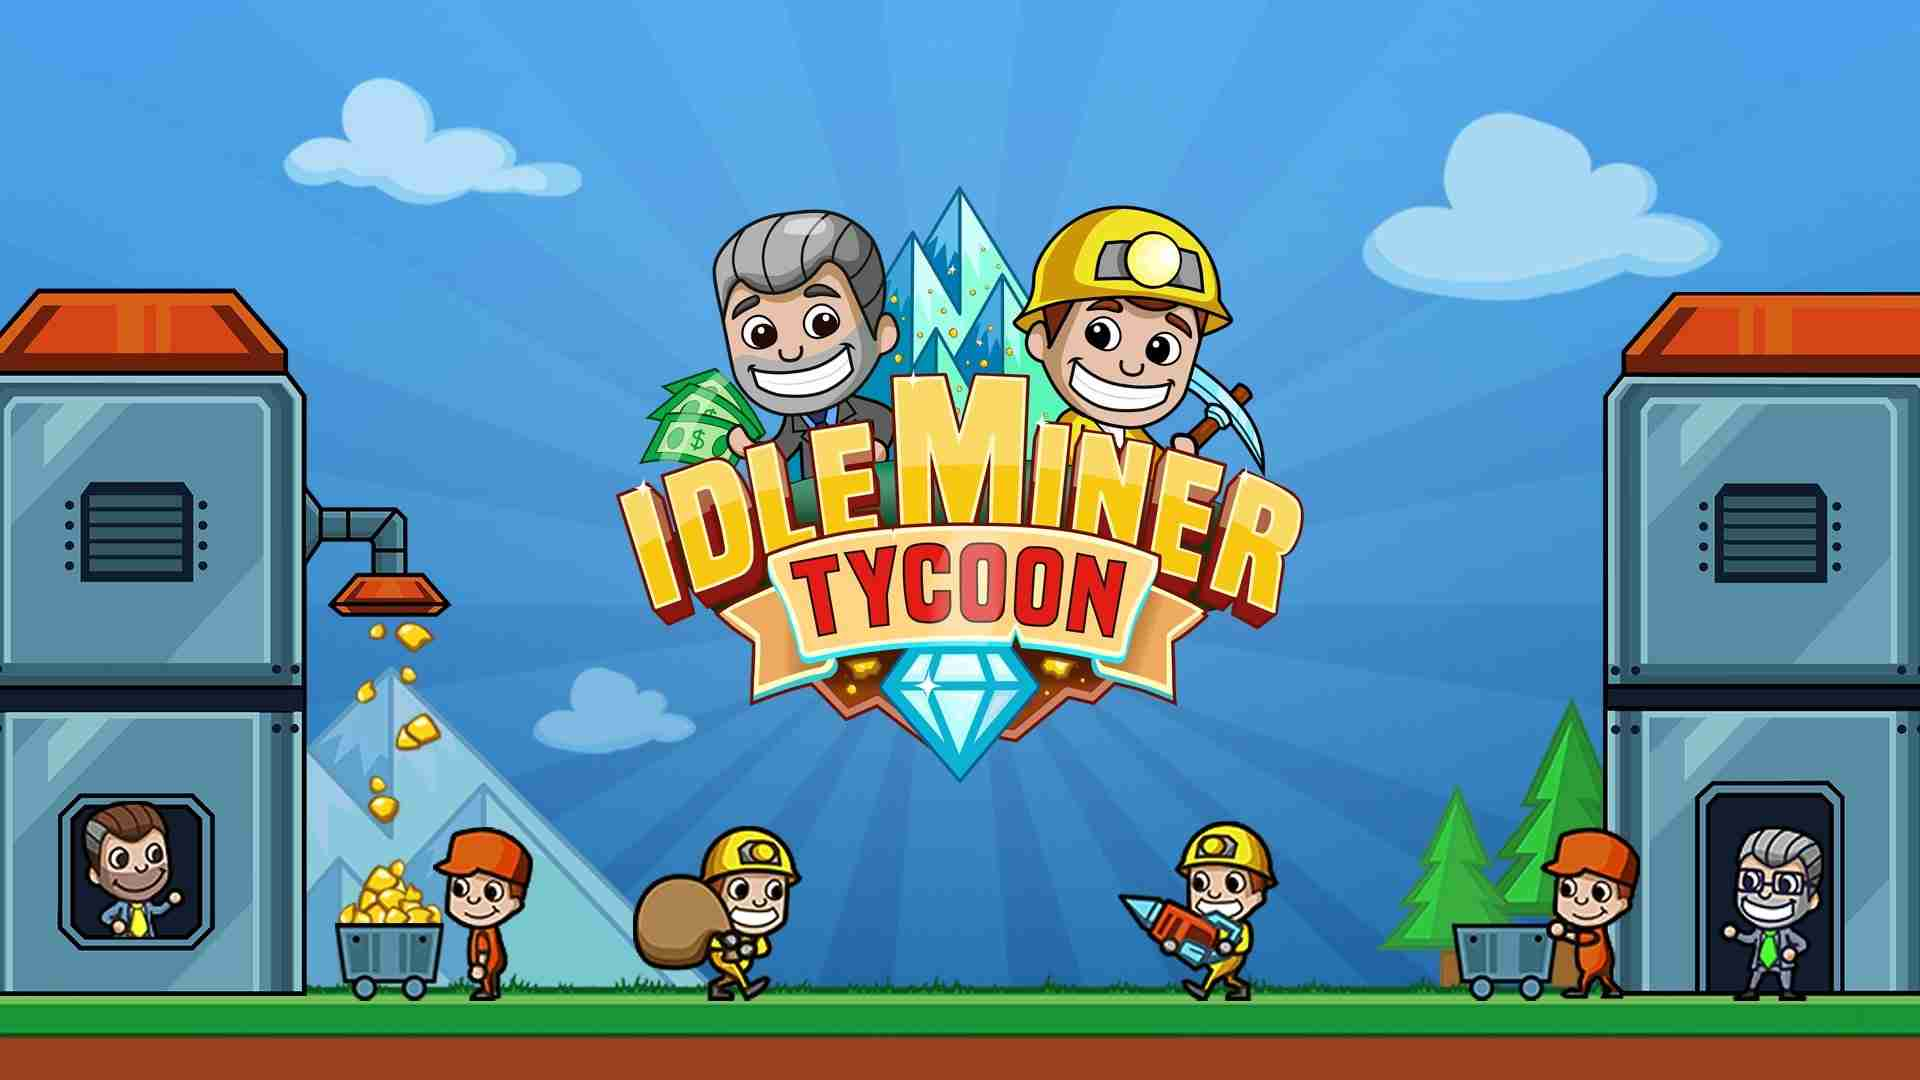 Idle Miner Tycoon cover min - Idle Miner Tycoon v 2.91.0 Apk Mod (Dinheiro Infinito)